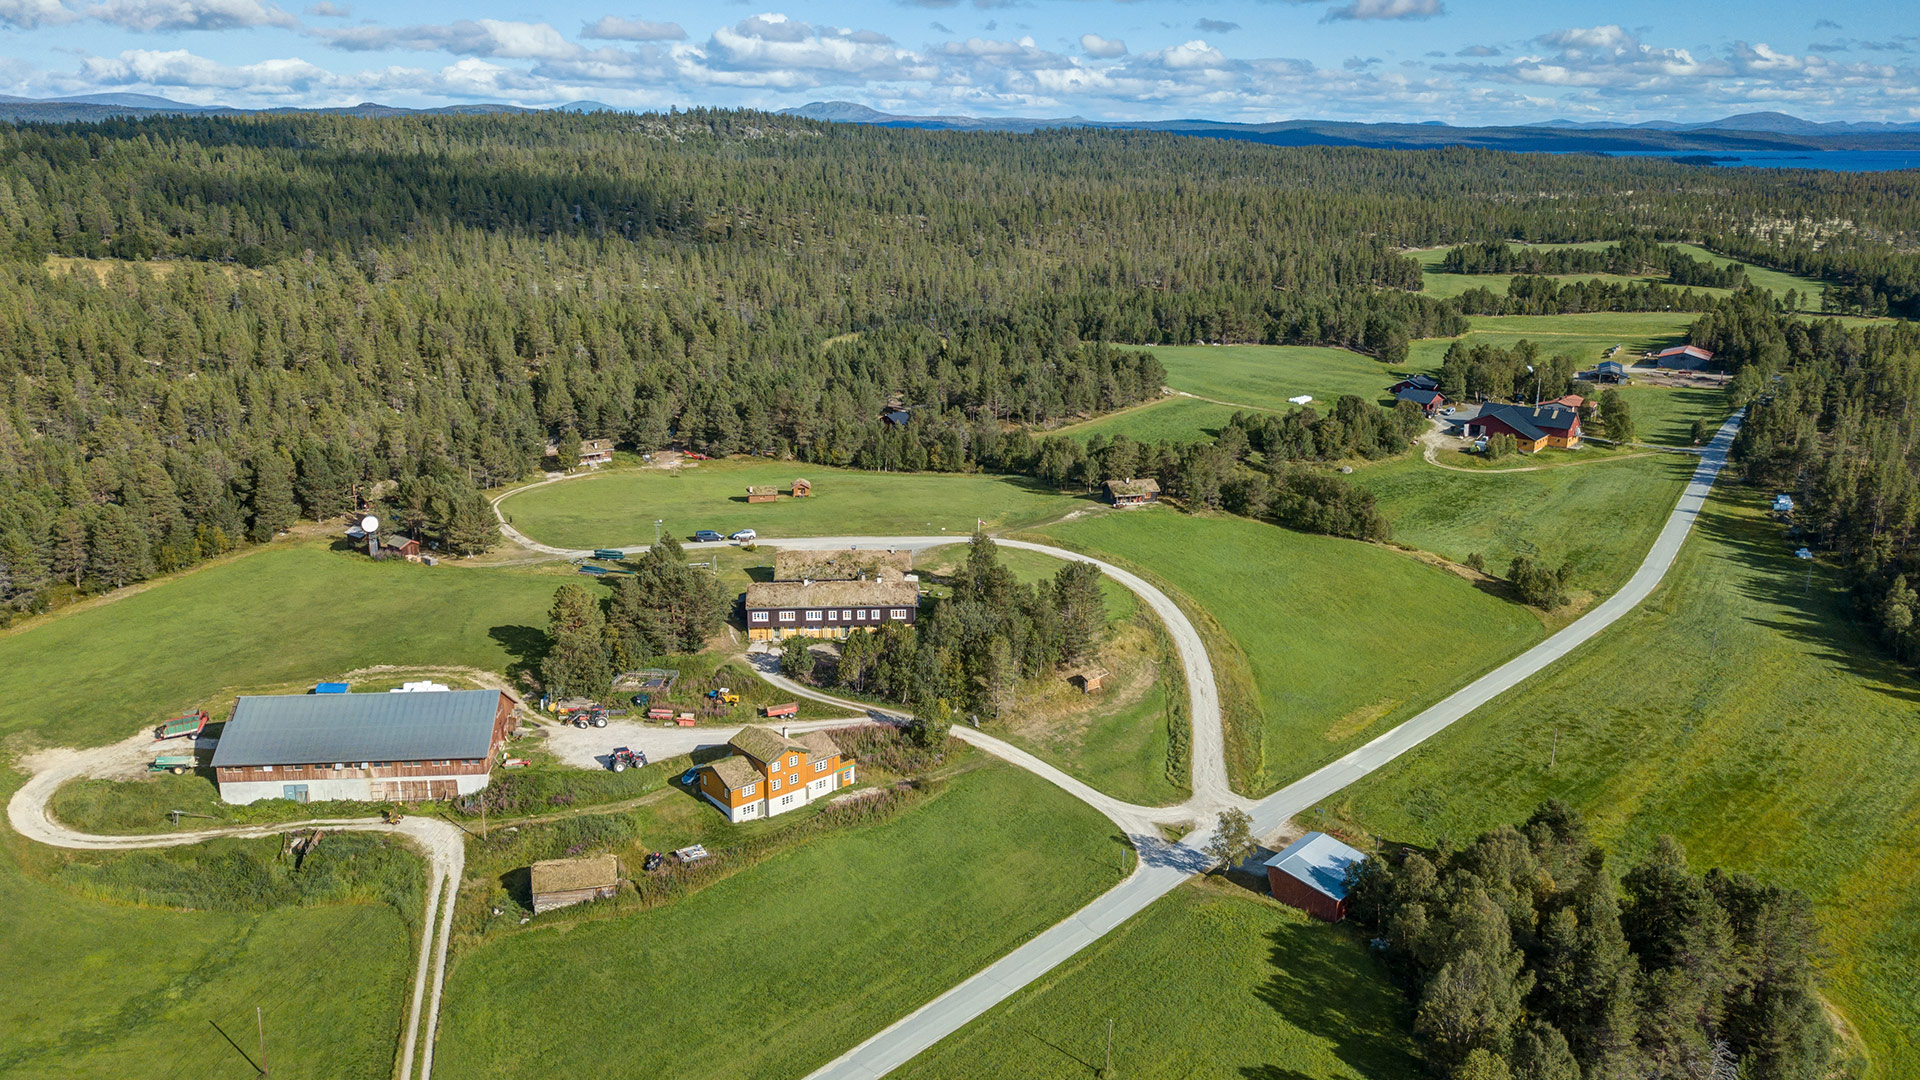 Langen Gjestegård viewed from the air.